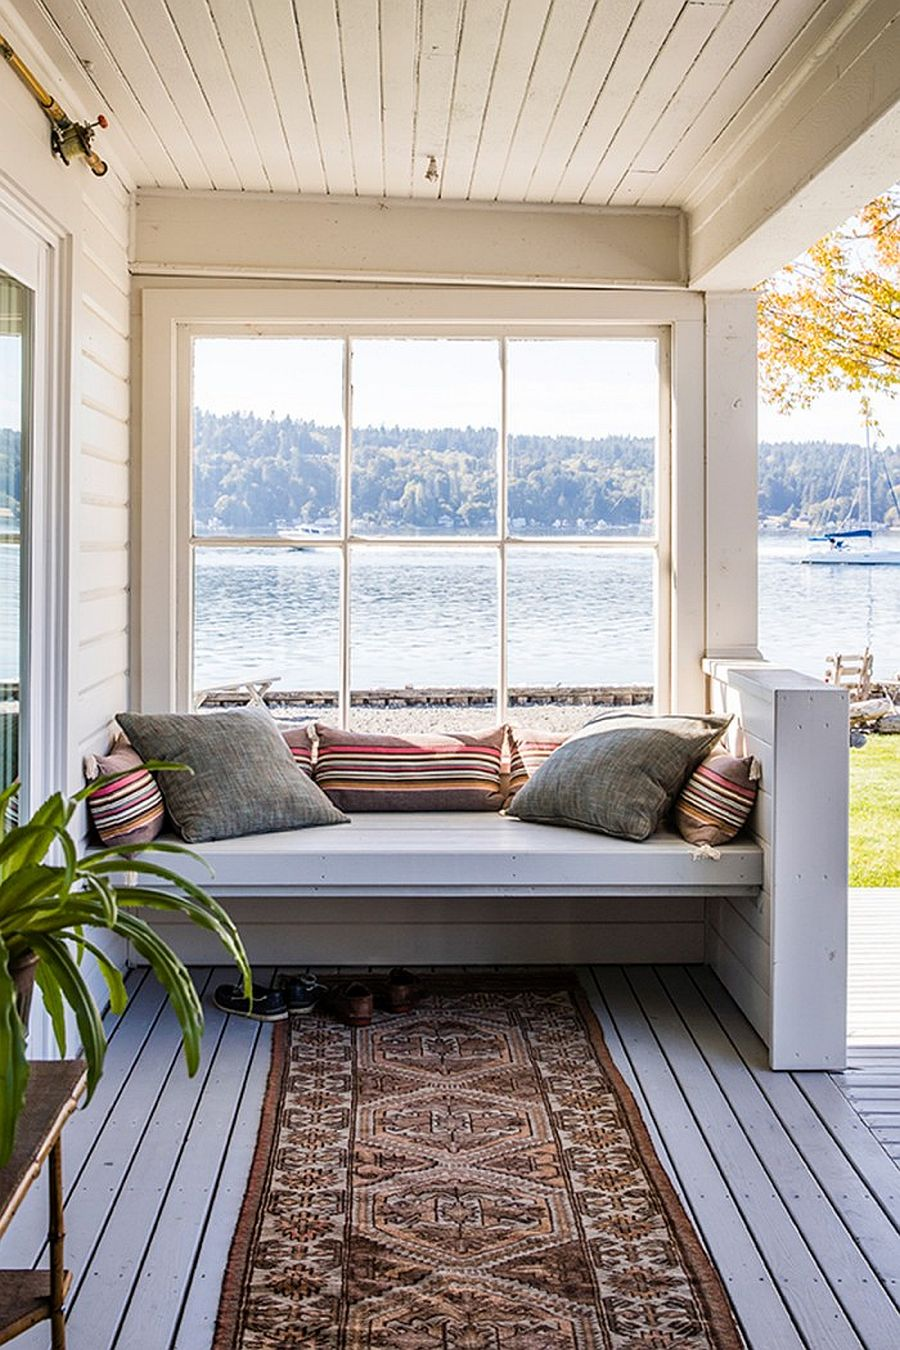 Bench on the wooden patio of the island home with fabulous veiws just beyond